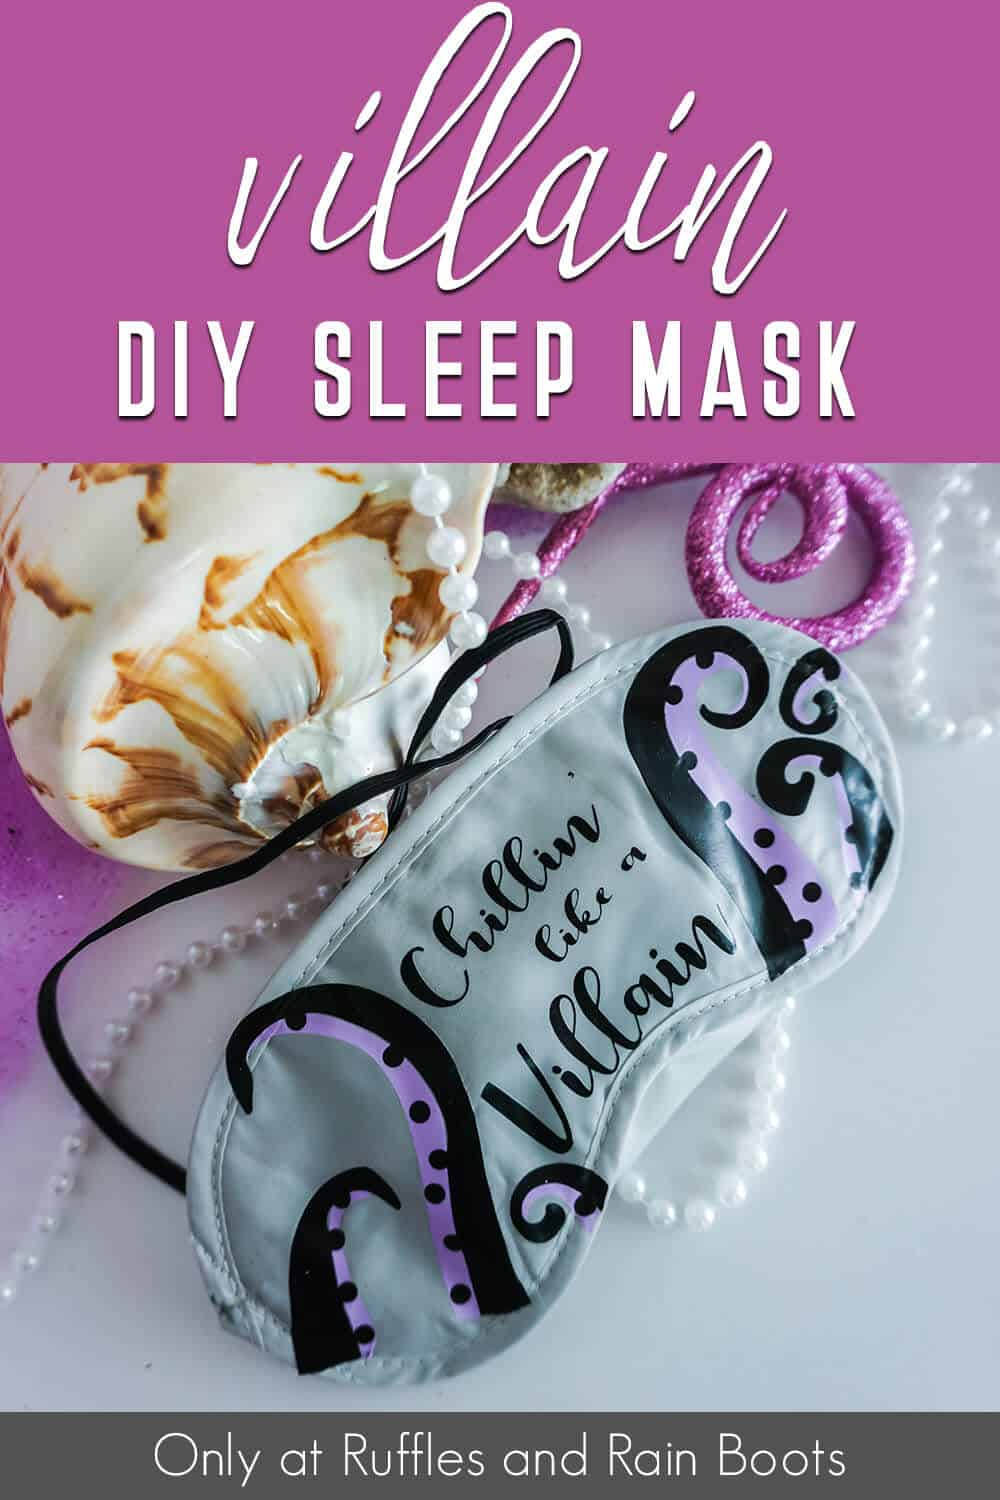 closeup of ursula sleep mas for a disney cruise fish extender gift you can make with text which reads villain diy sleep mask